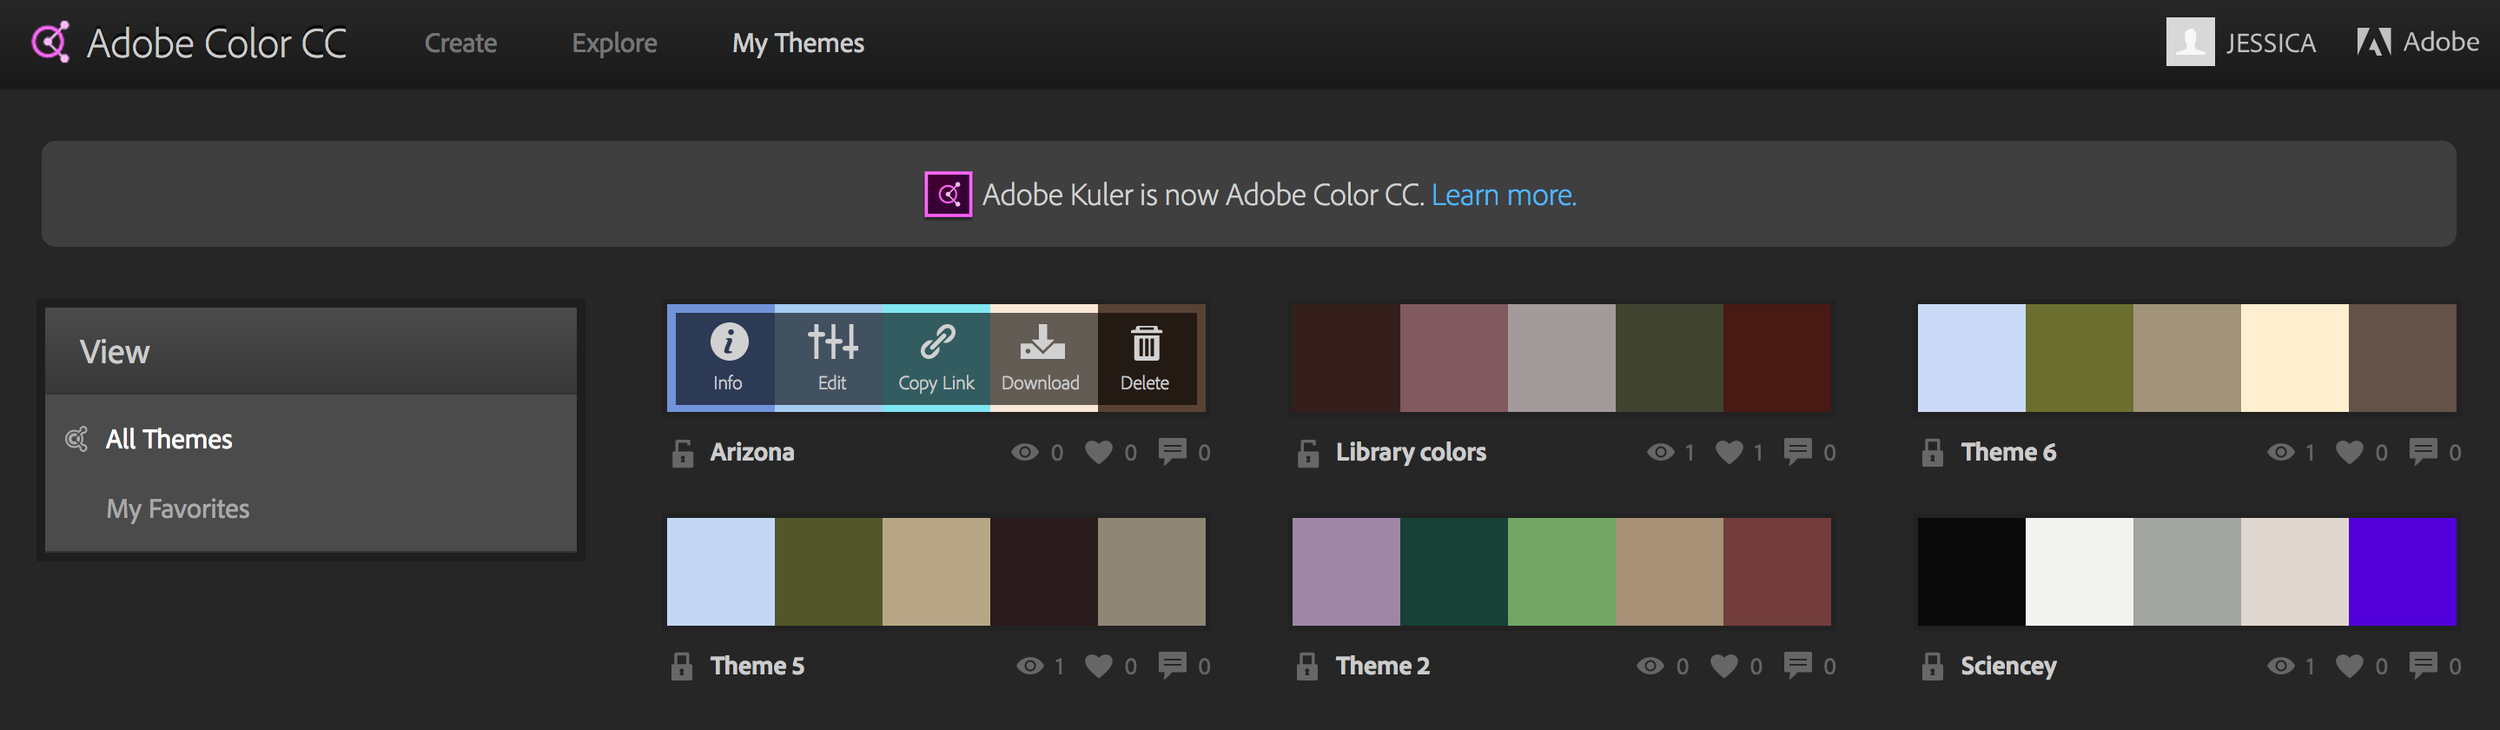 Log onto color.adobe.com to access your new themes